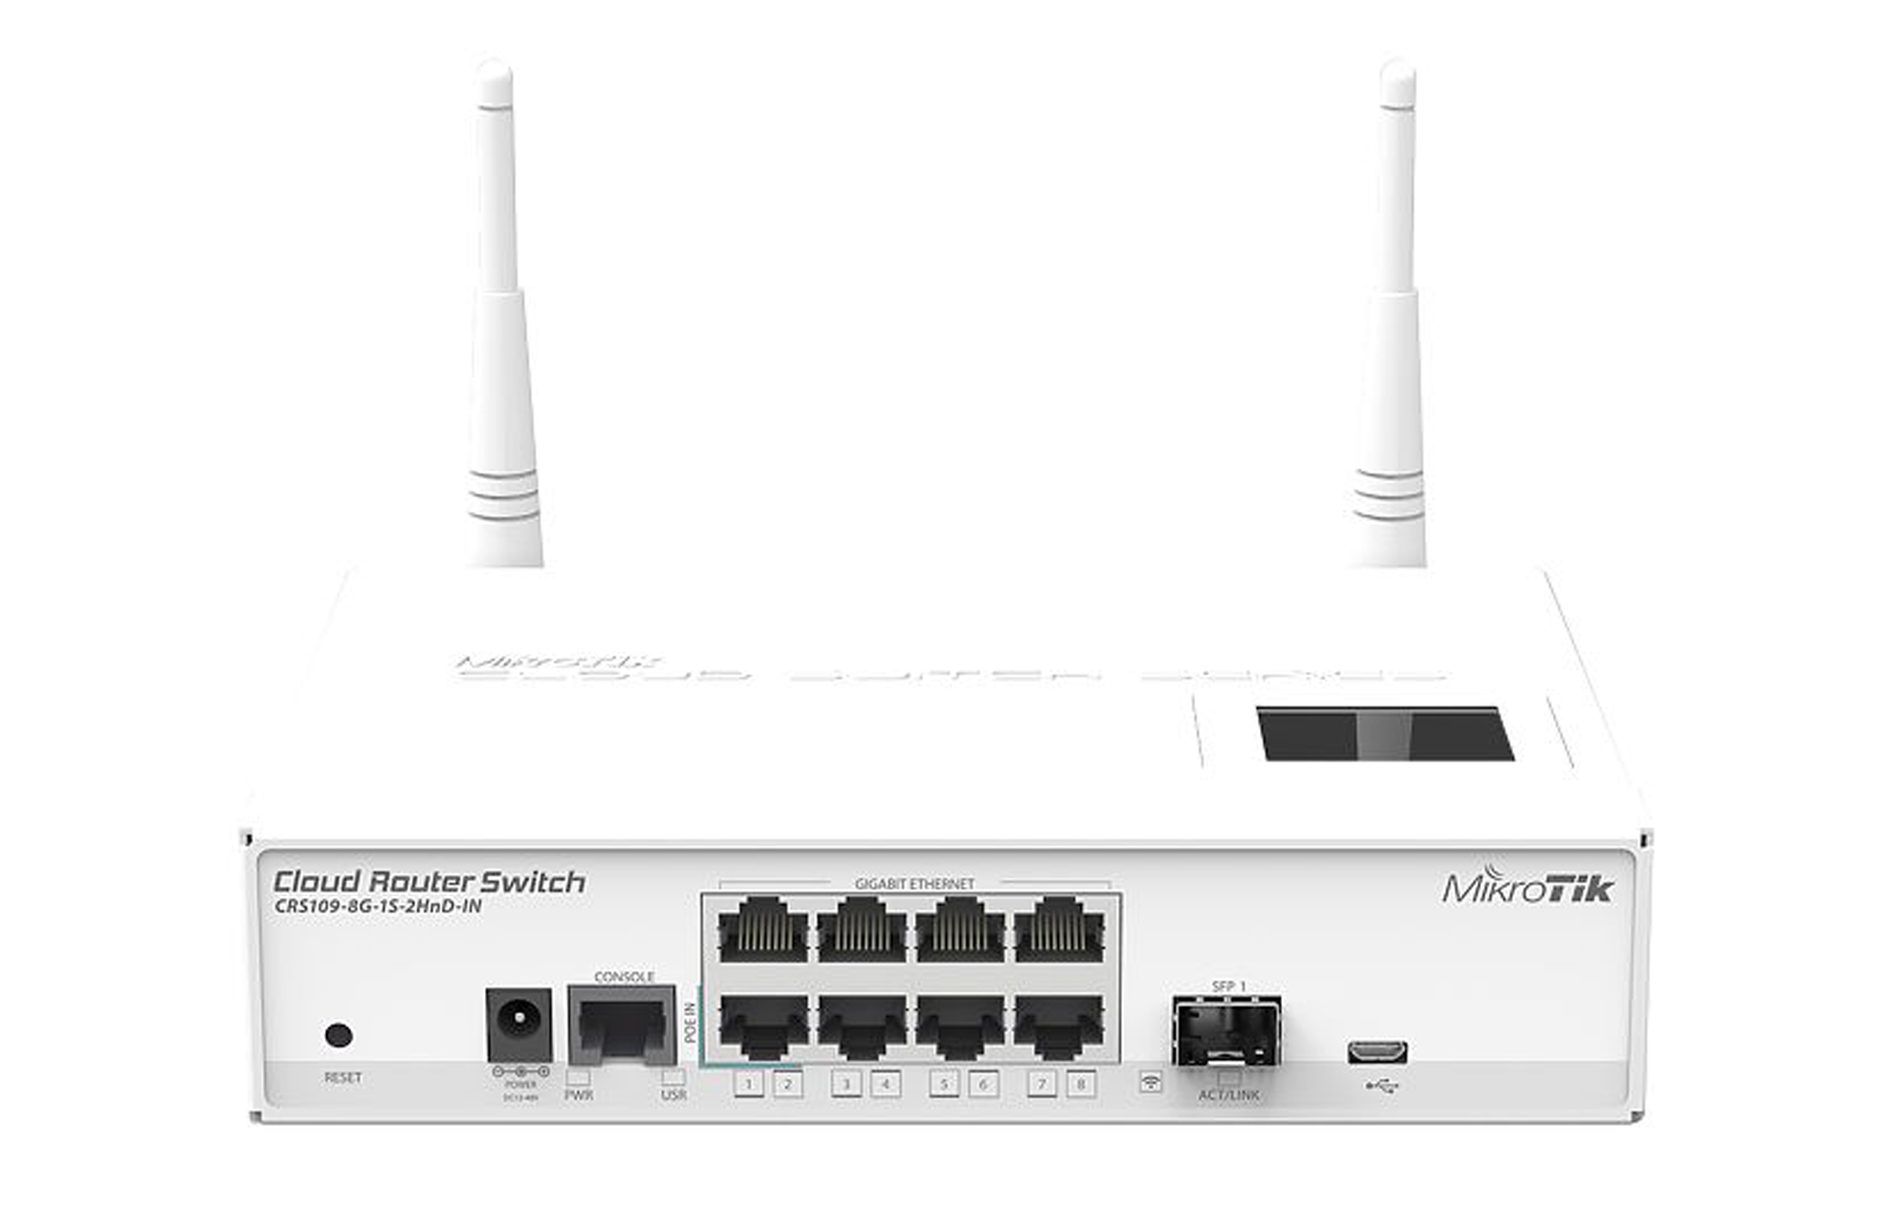 Products Mikrotik Help Tech Co Ltd Rb951g 2hnd Cloud Router Switch Crs109 8g 1s In